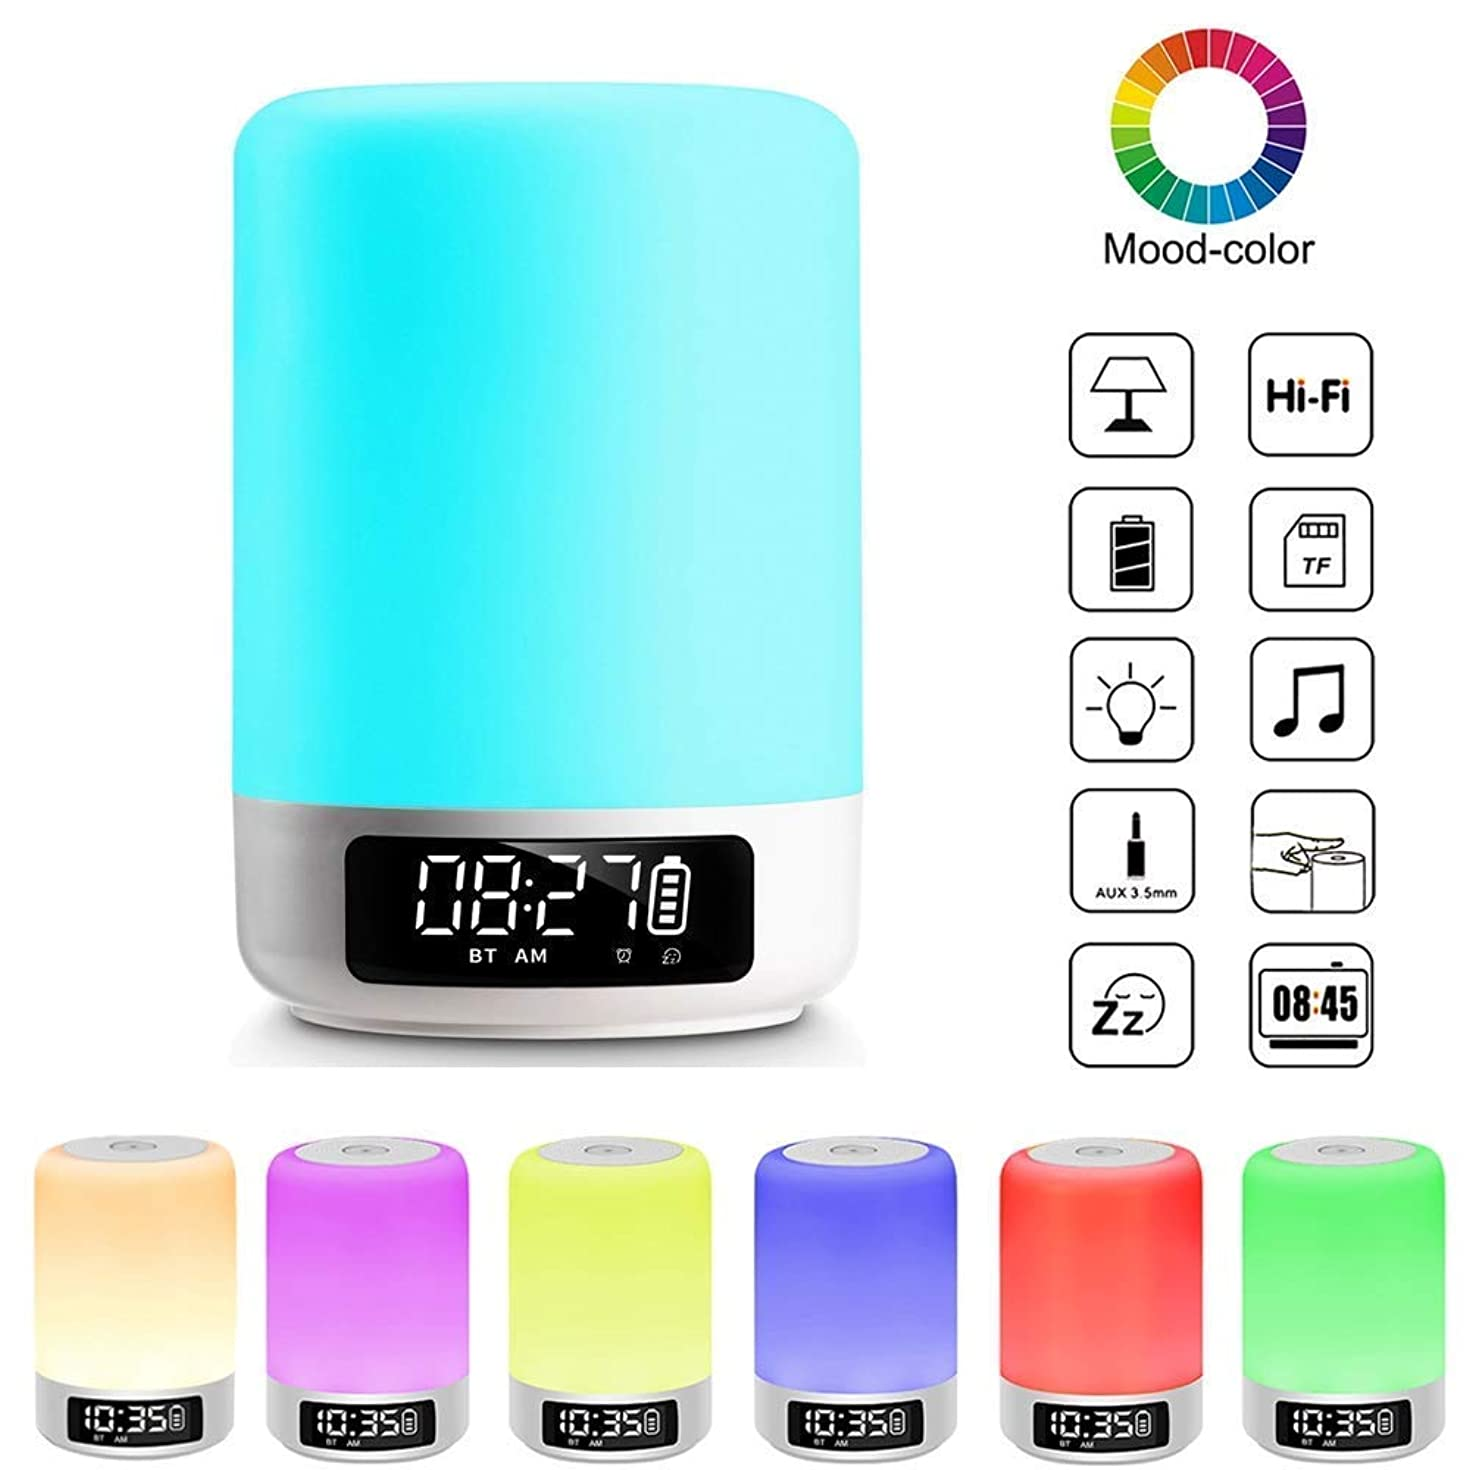 Night Light Bluetooth Speaker, Touch Sensor Bedside Table Lamp with Digital Alarm Clock, LED Color Changing Portable MP3 Player Gifts for Kids Teens Bedroom Party